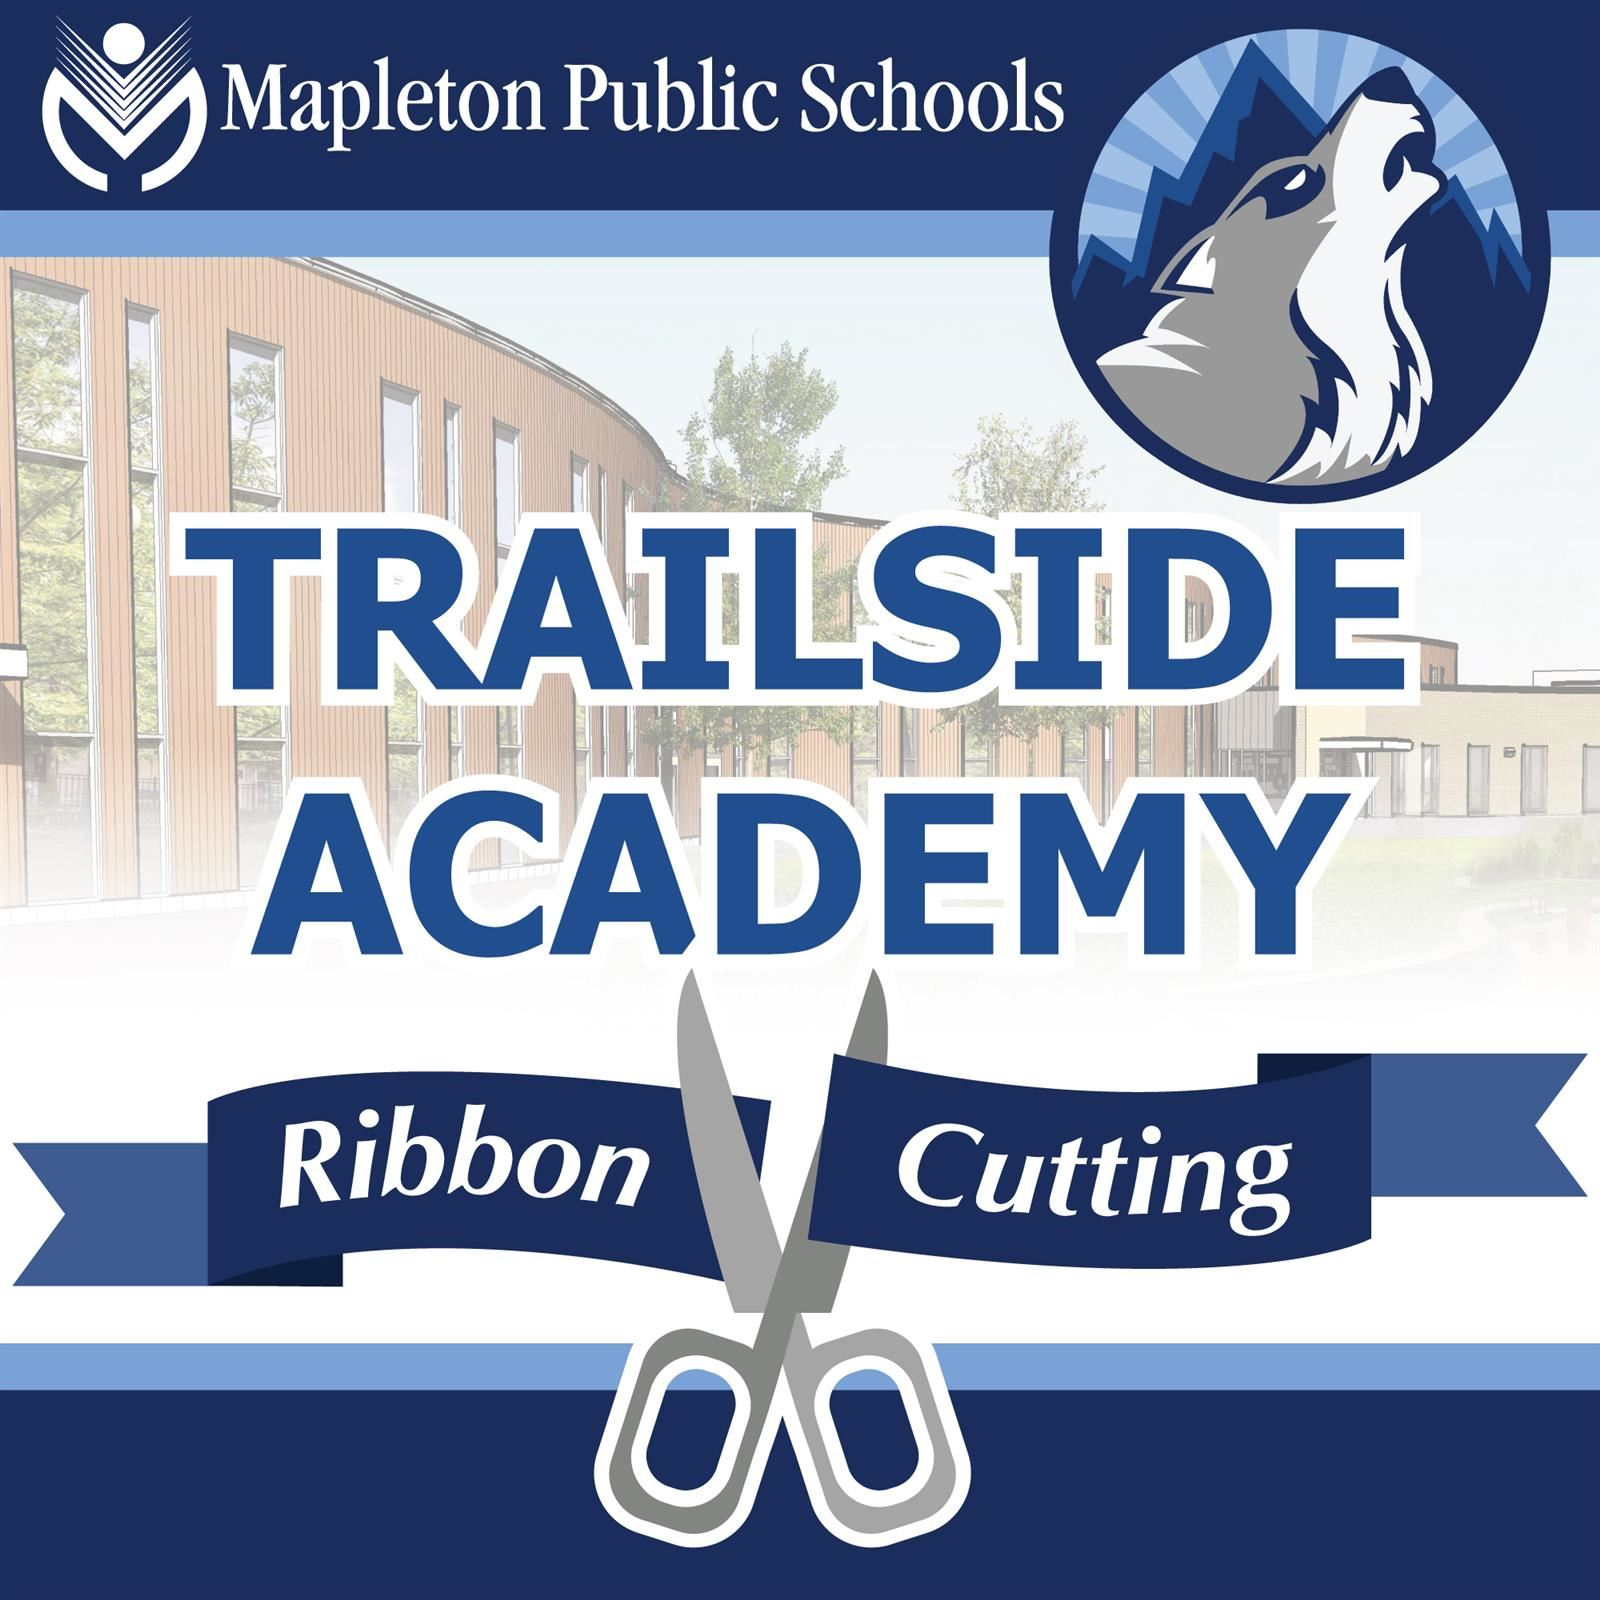 Thumbnail for Ribbon Cutting Ceremony